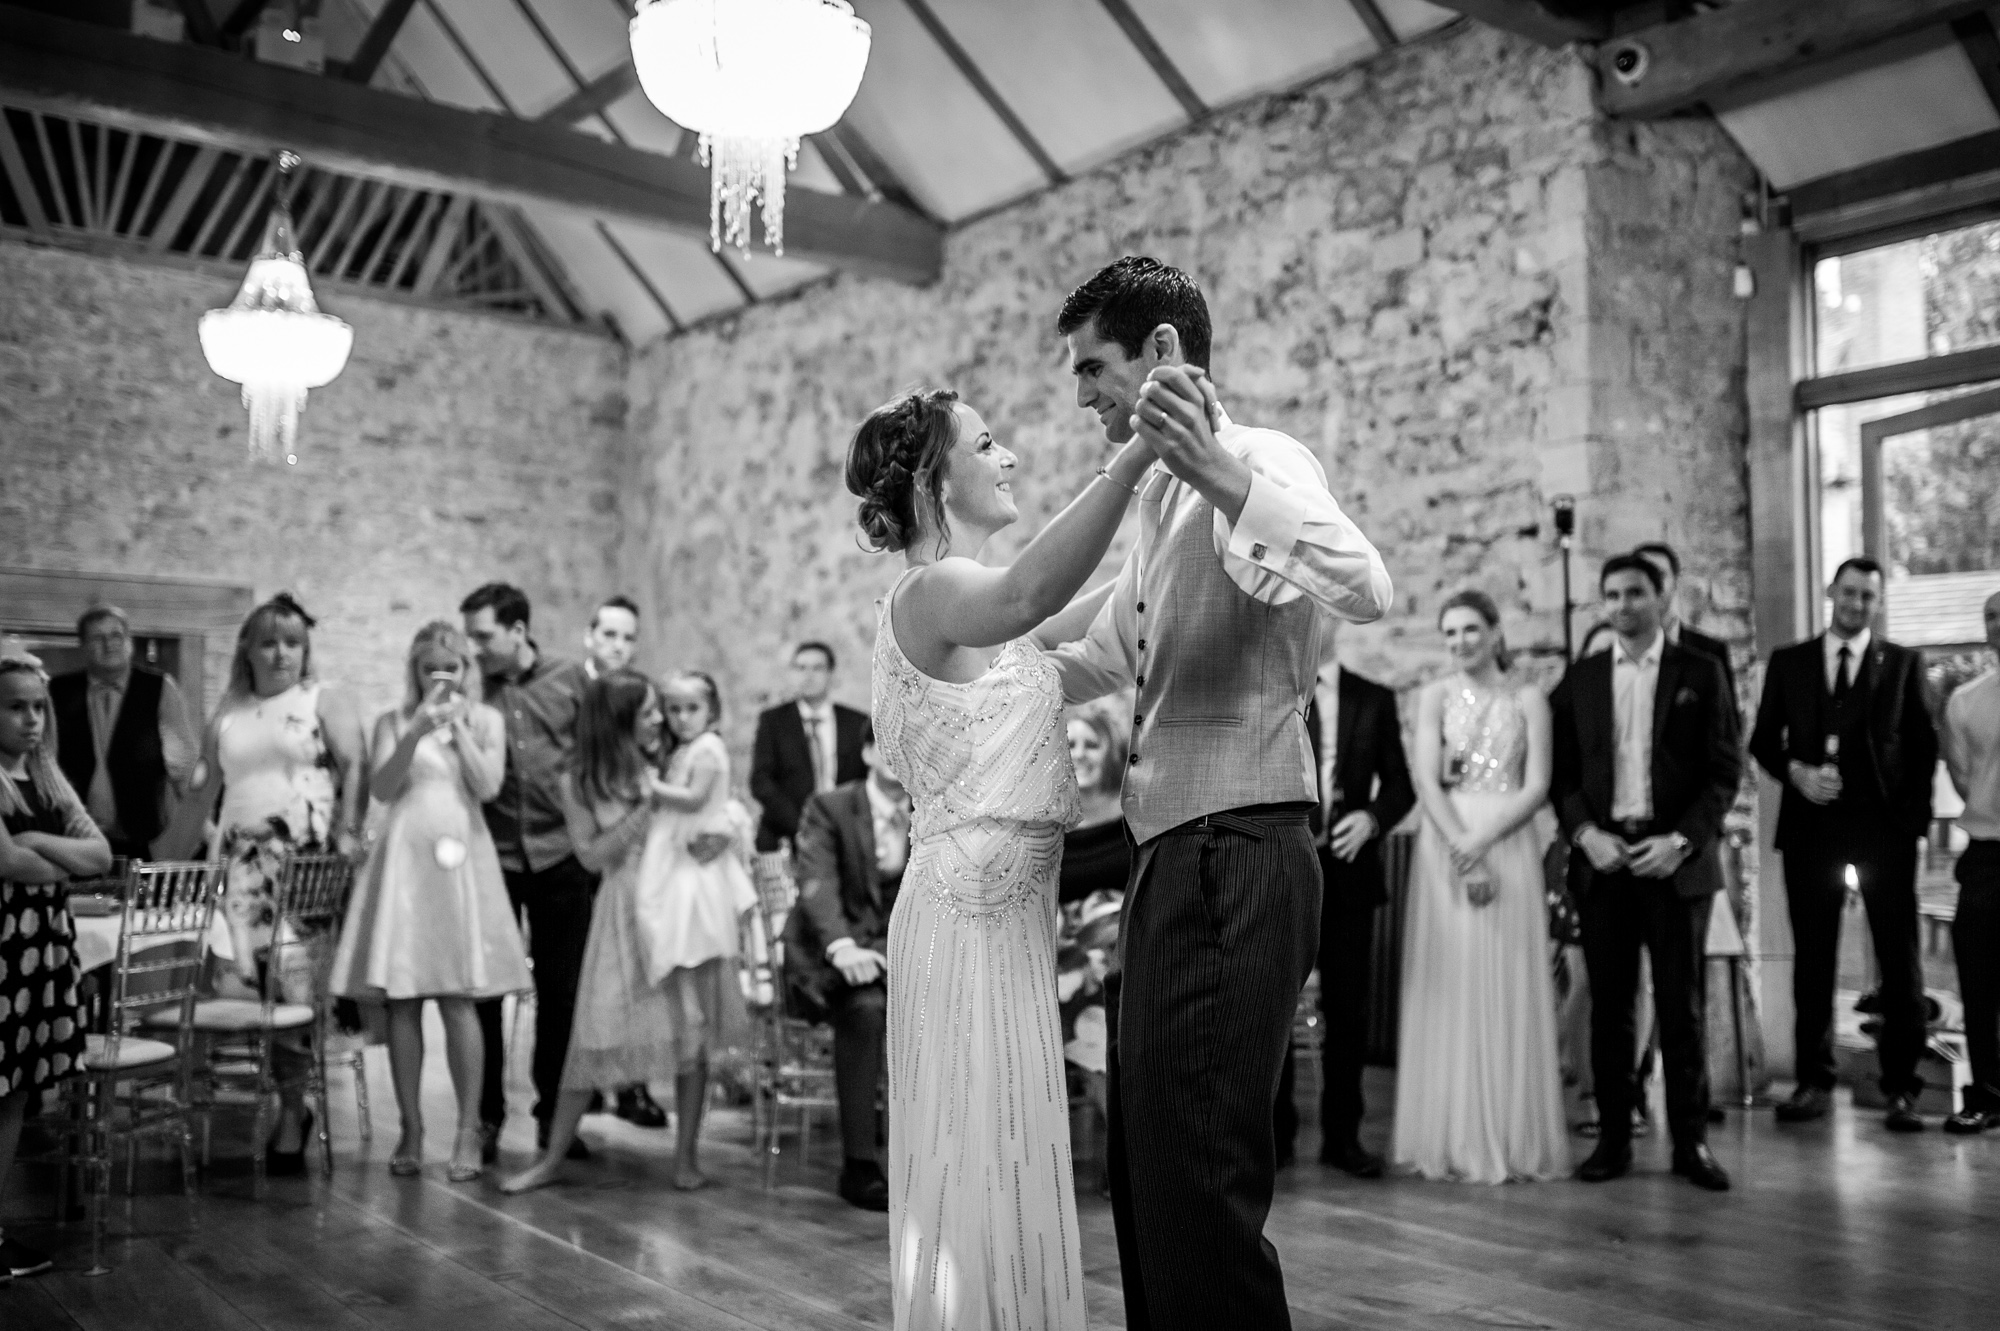 Notley Barn Wedding 26.10.18 37.jpg